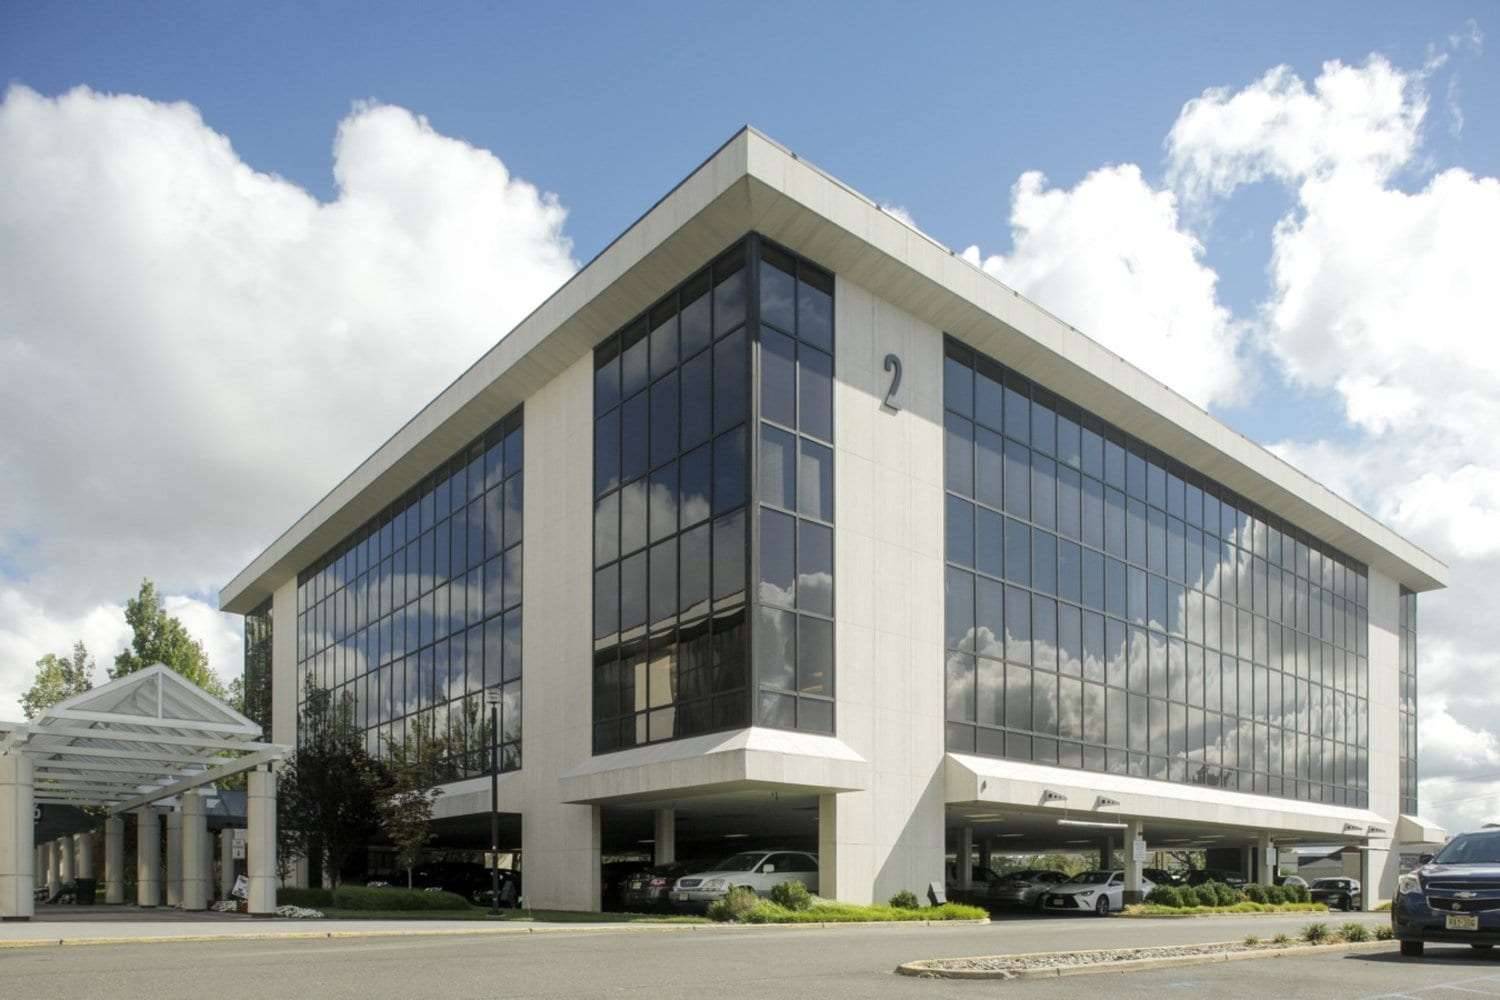 An image of the building where our physical therapy clinic is located in in Clifton, New Jersey.